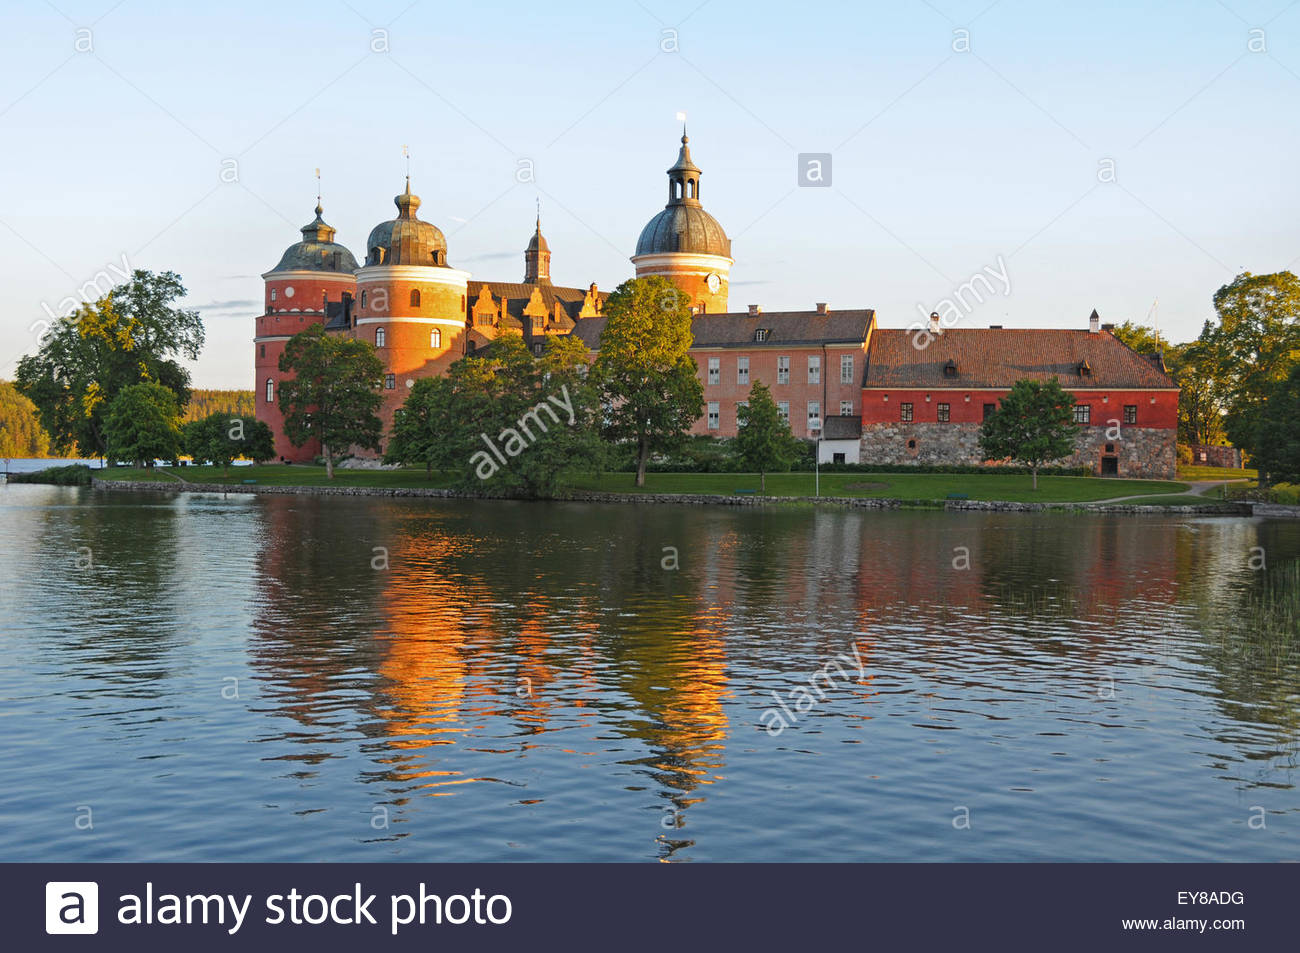 Gripsholm Castle near Lake Mälaren at the town of Mariefred in Södermanland Province in south central - Stock Image